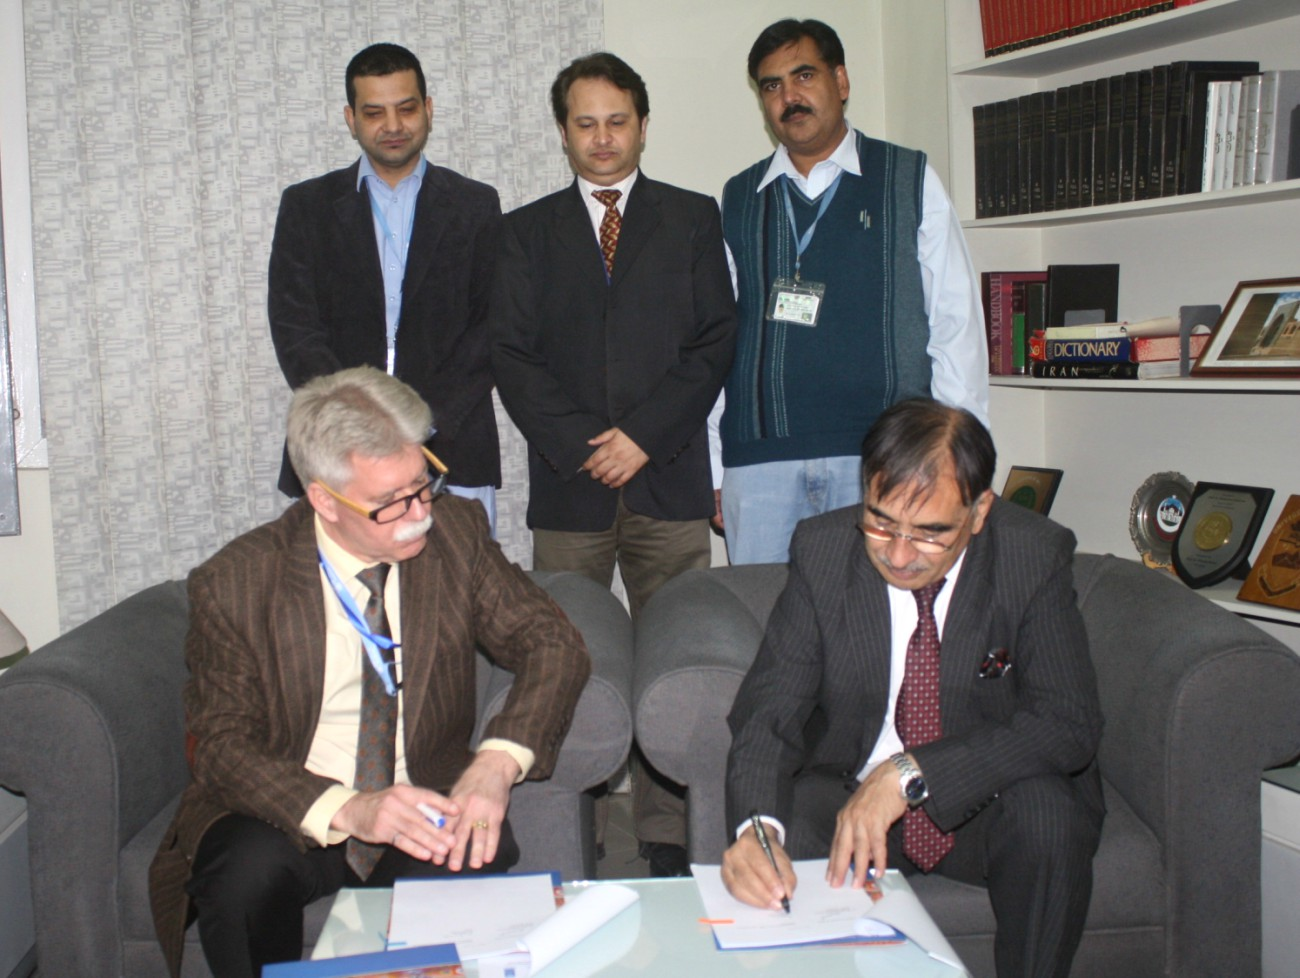 Vice Chancellor UoP Prof. Dr. Muhammad Rasul Jan and representative of UNDP signing MoU between the two institutions at the University of Peshawar